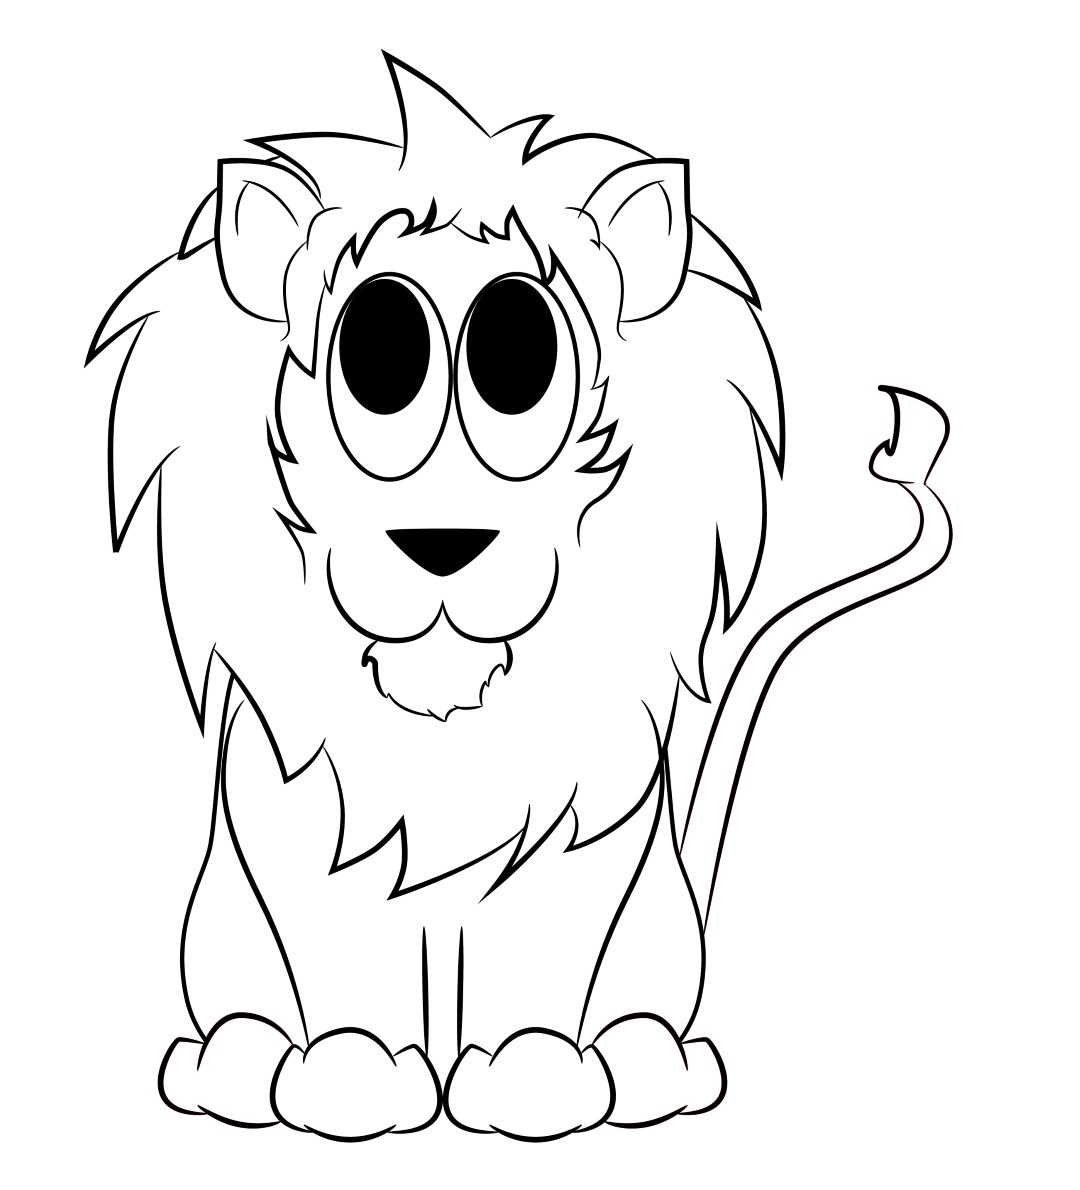 how to draw lion cartoon anime lion drawing at getdrawings free download lion cartoon draw how to